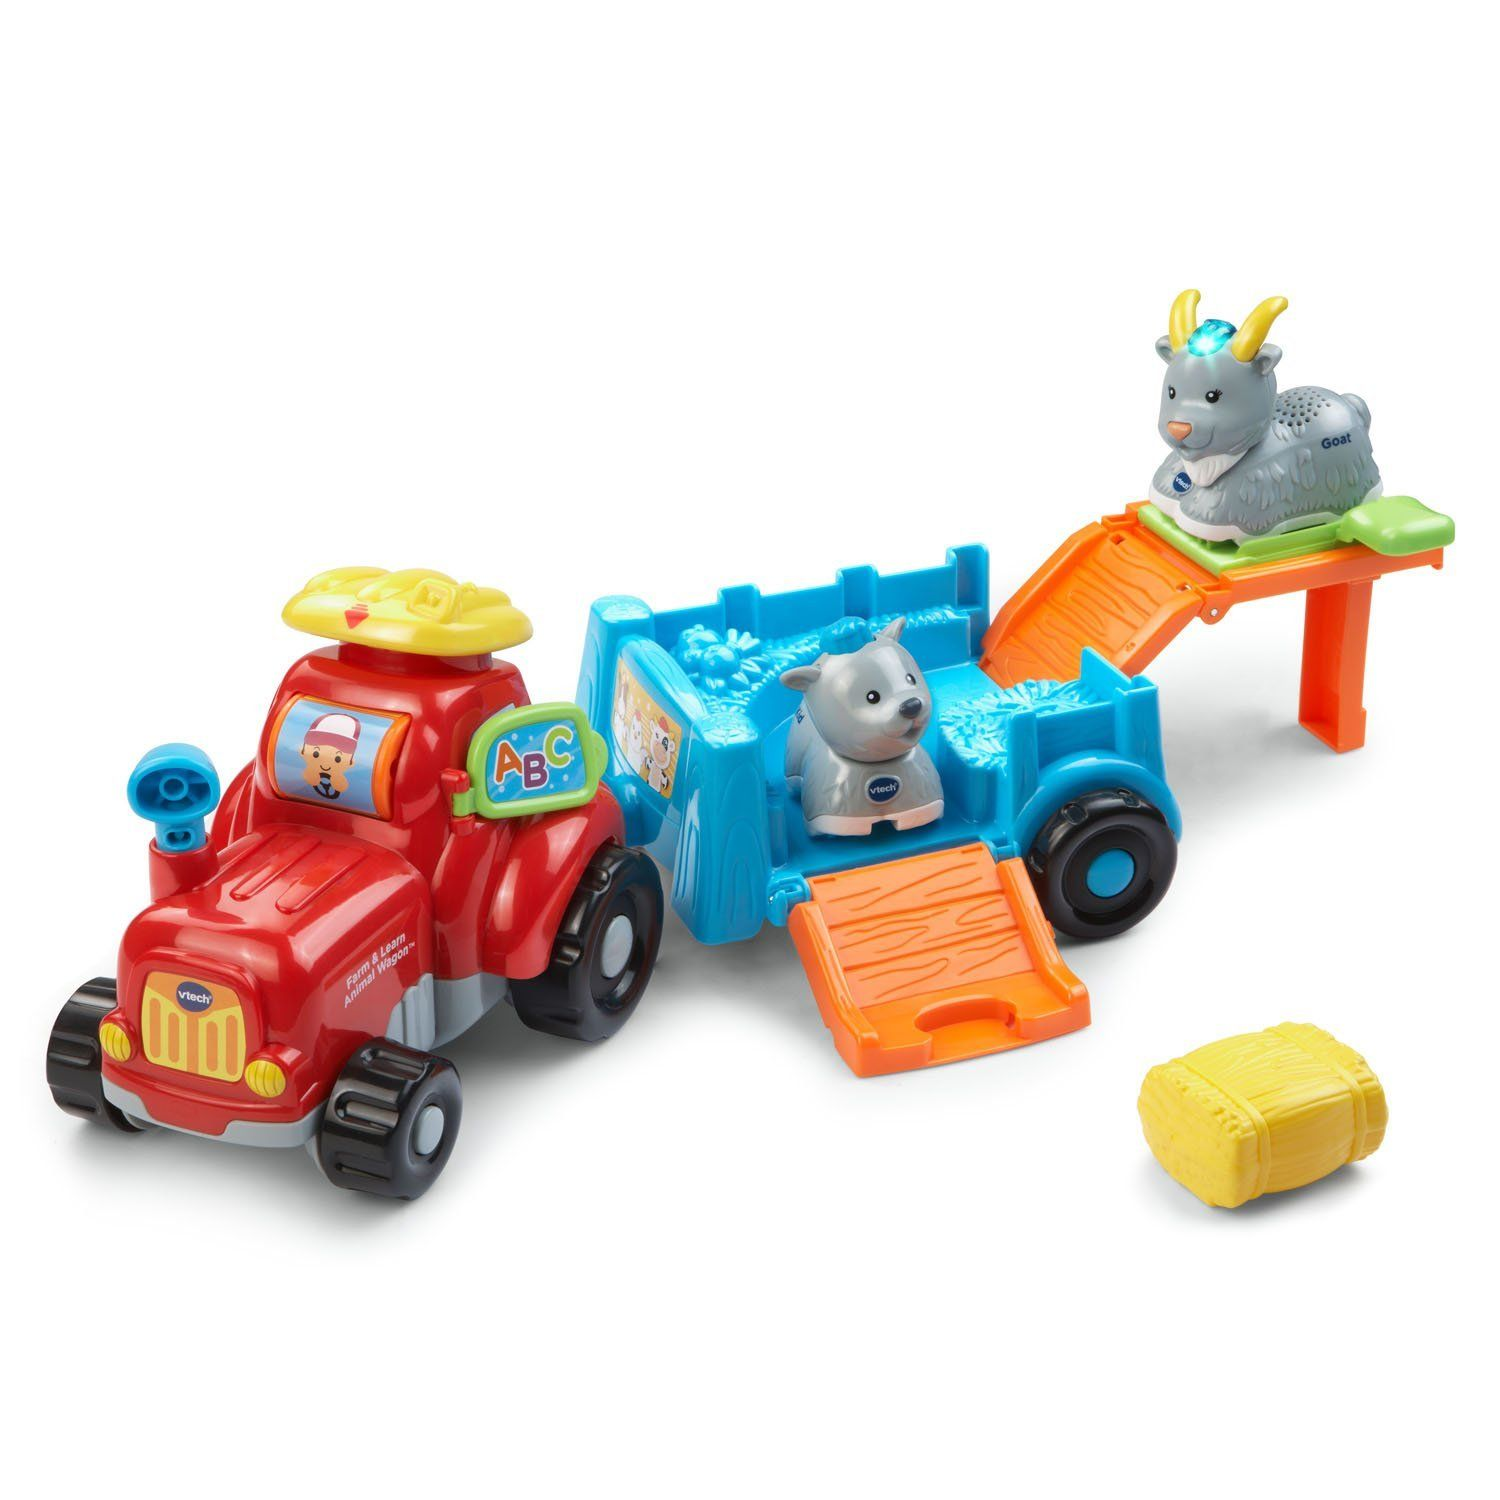 VTech Go Go Smart Animals Farm and Learn Tractor Playtime goes